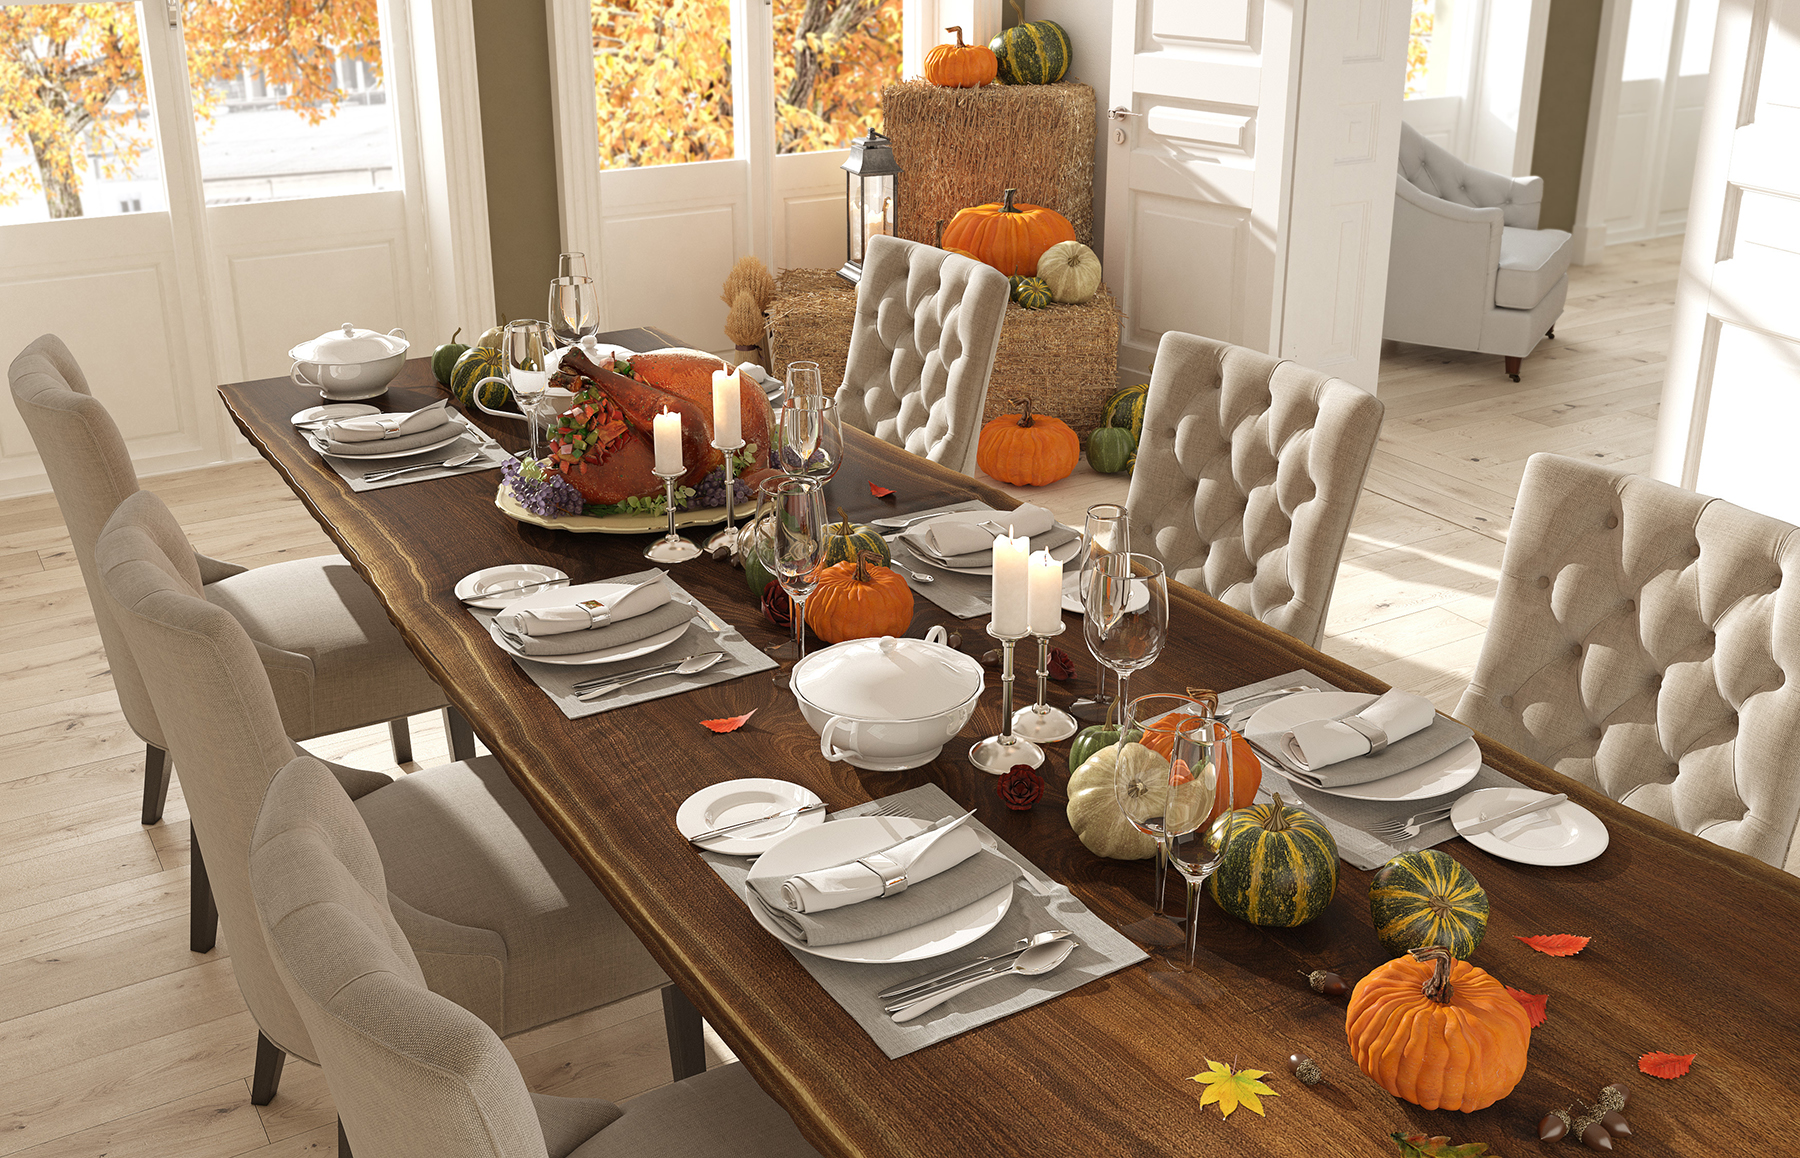 10 Thanksgiving decorations for your home